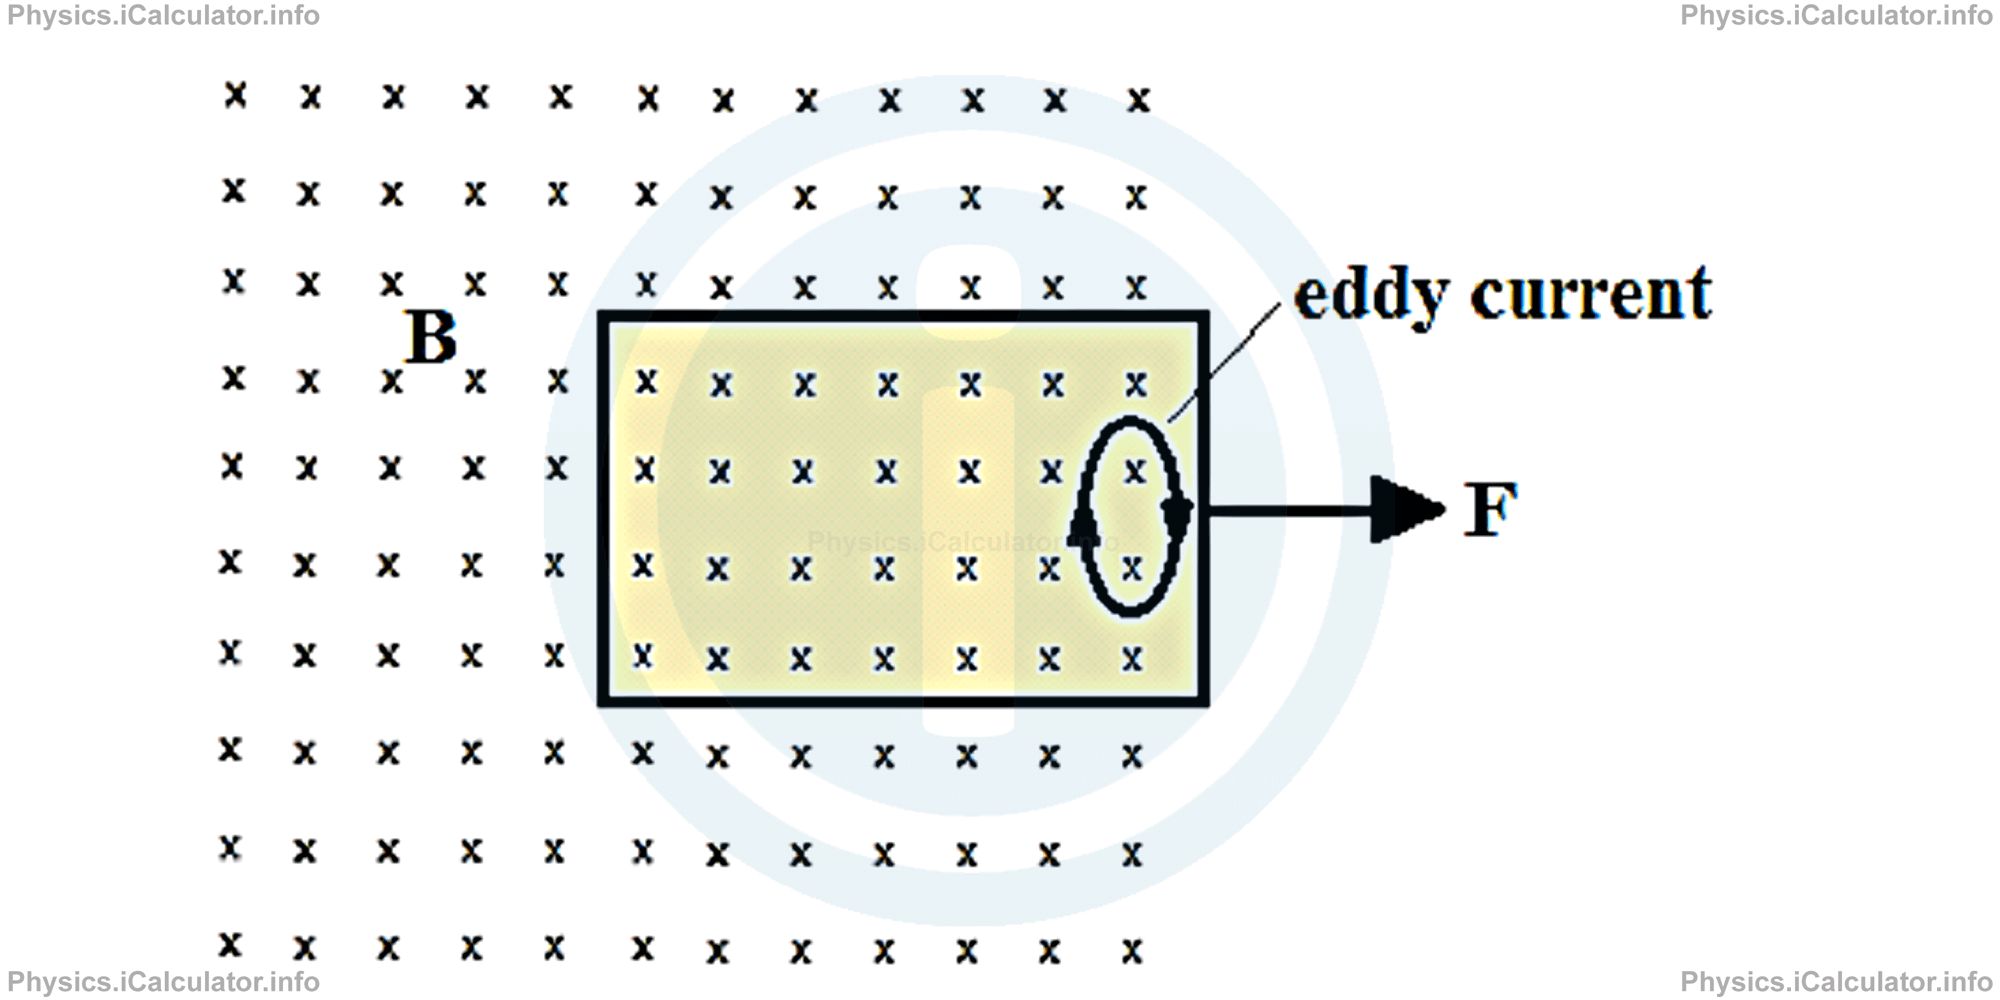 Physics Tutorials: This image provides visual information for the physics tutorial Induction and Energy Transfers